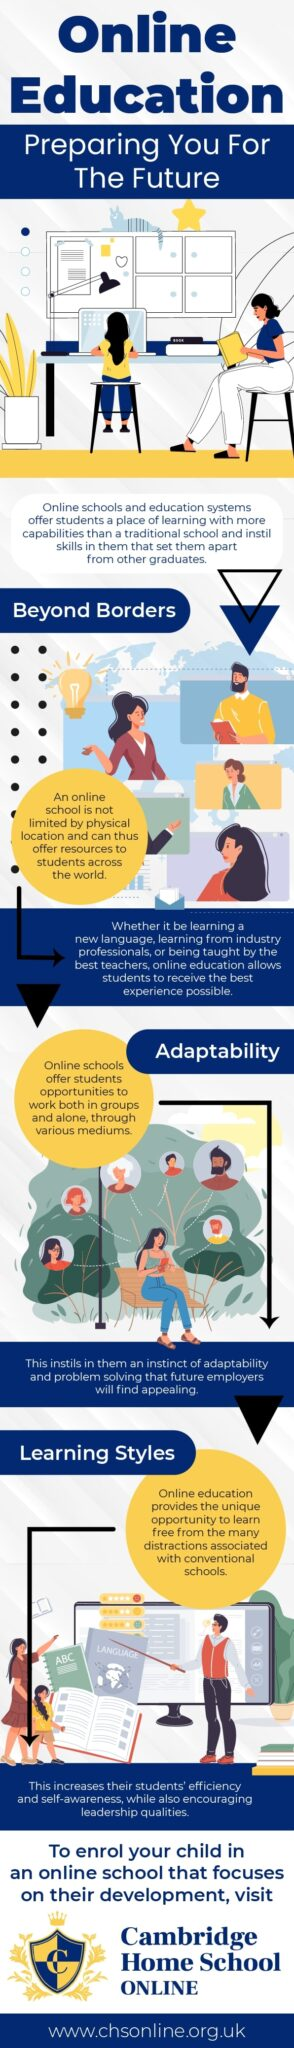 Online education preparing you for the future